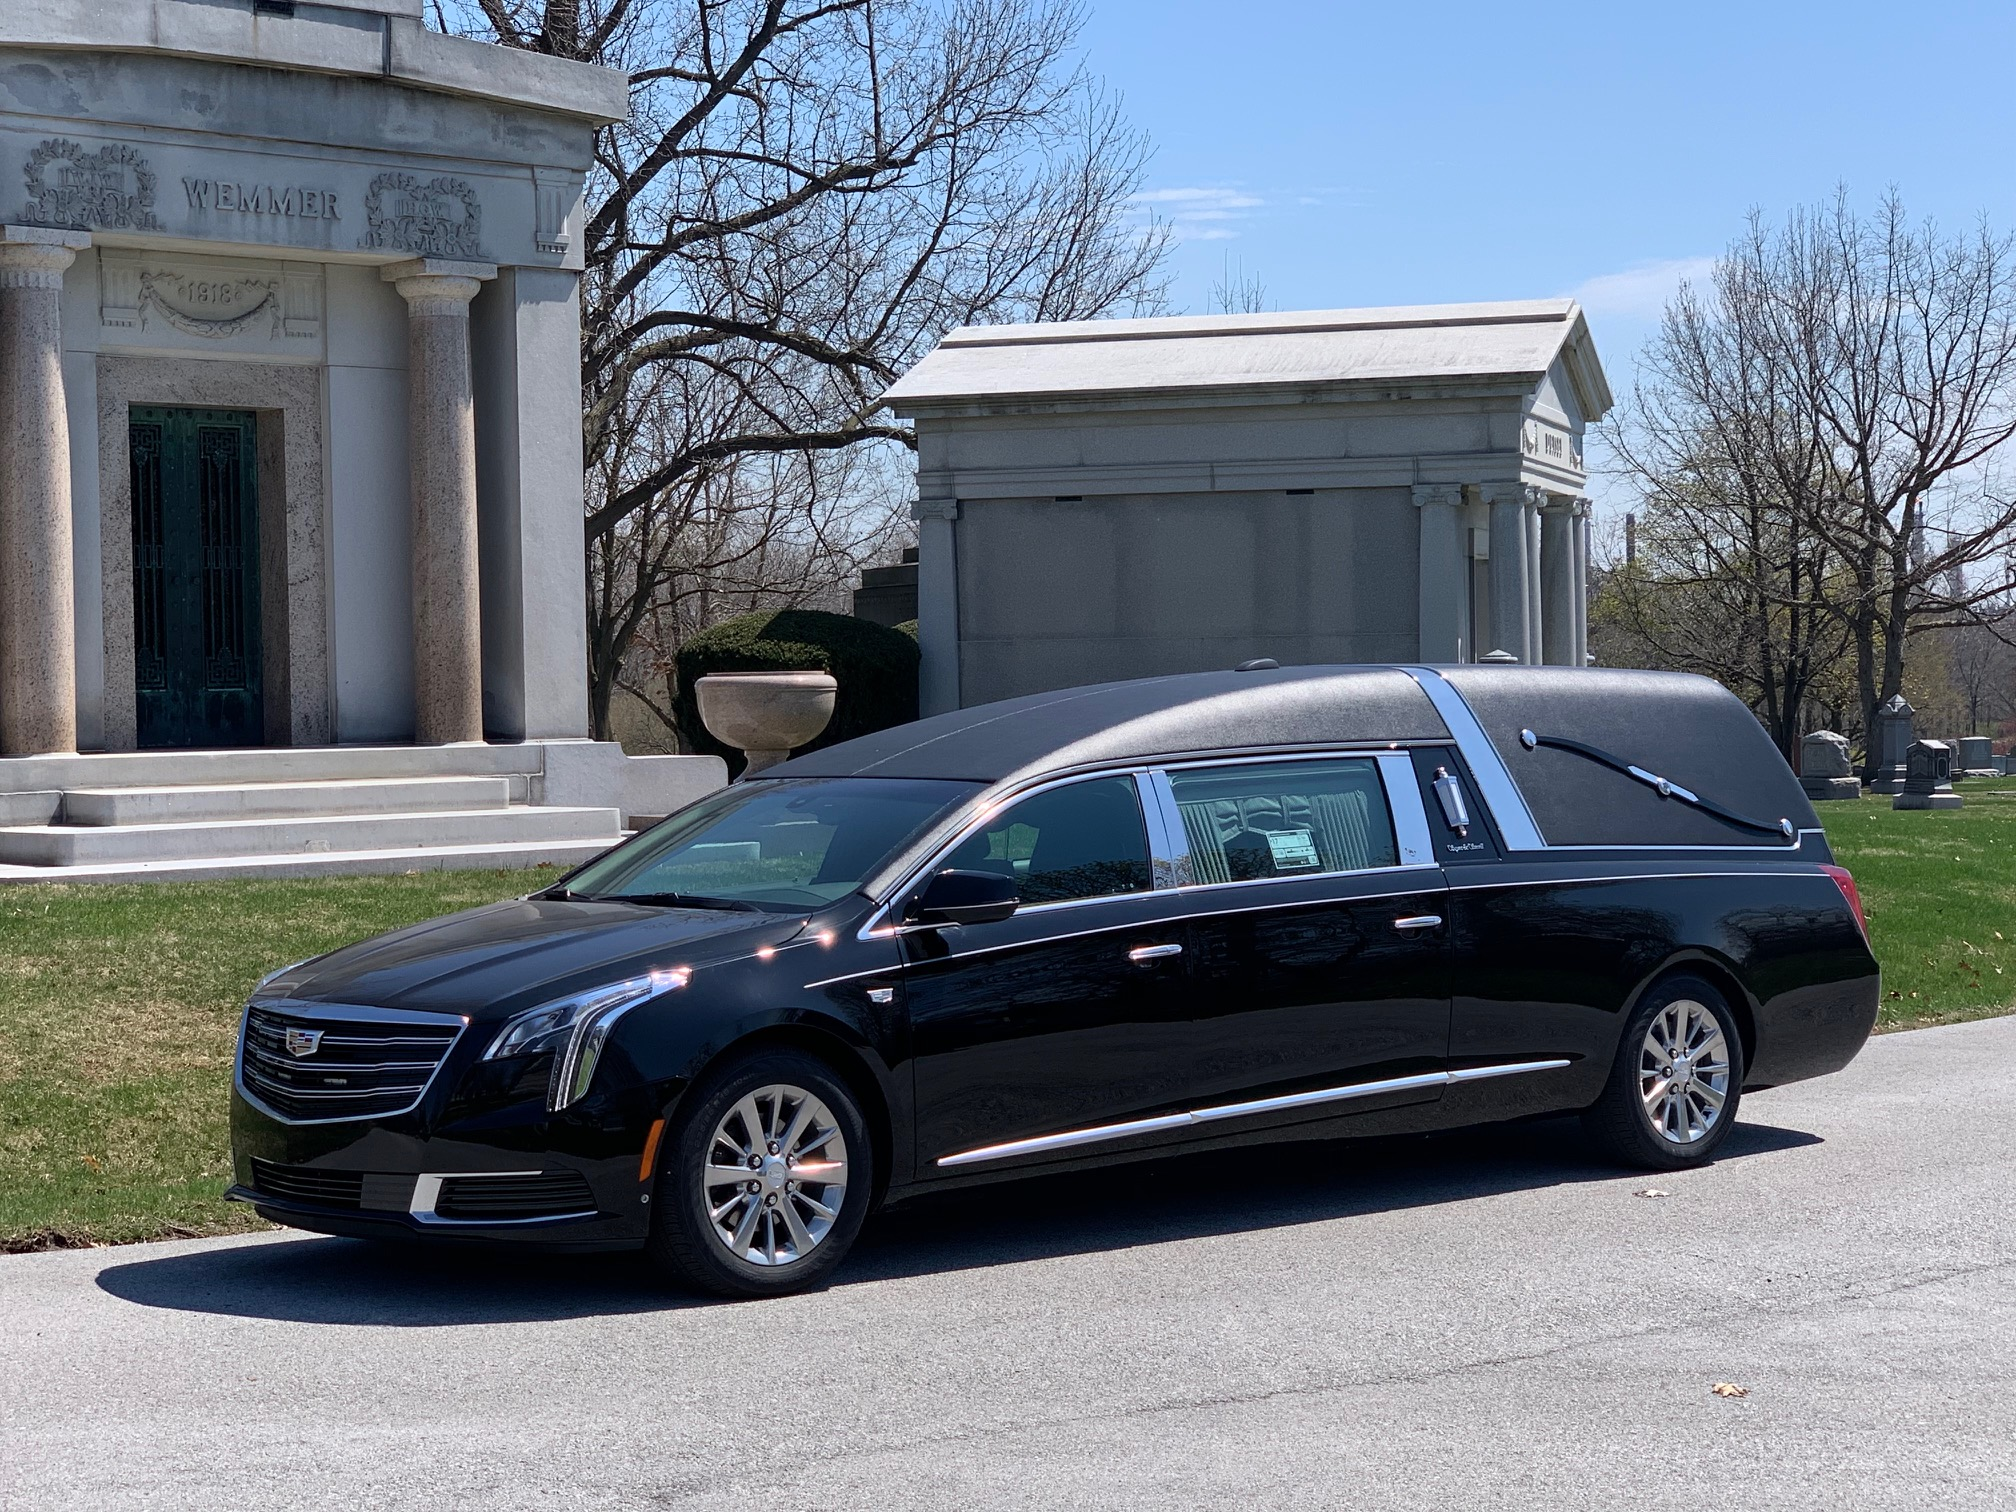 New 2019 Cadillac SS Hearse for Sale 1